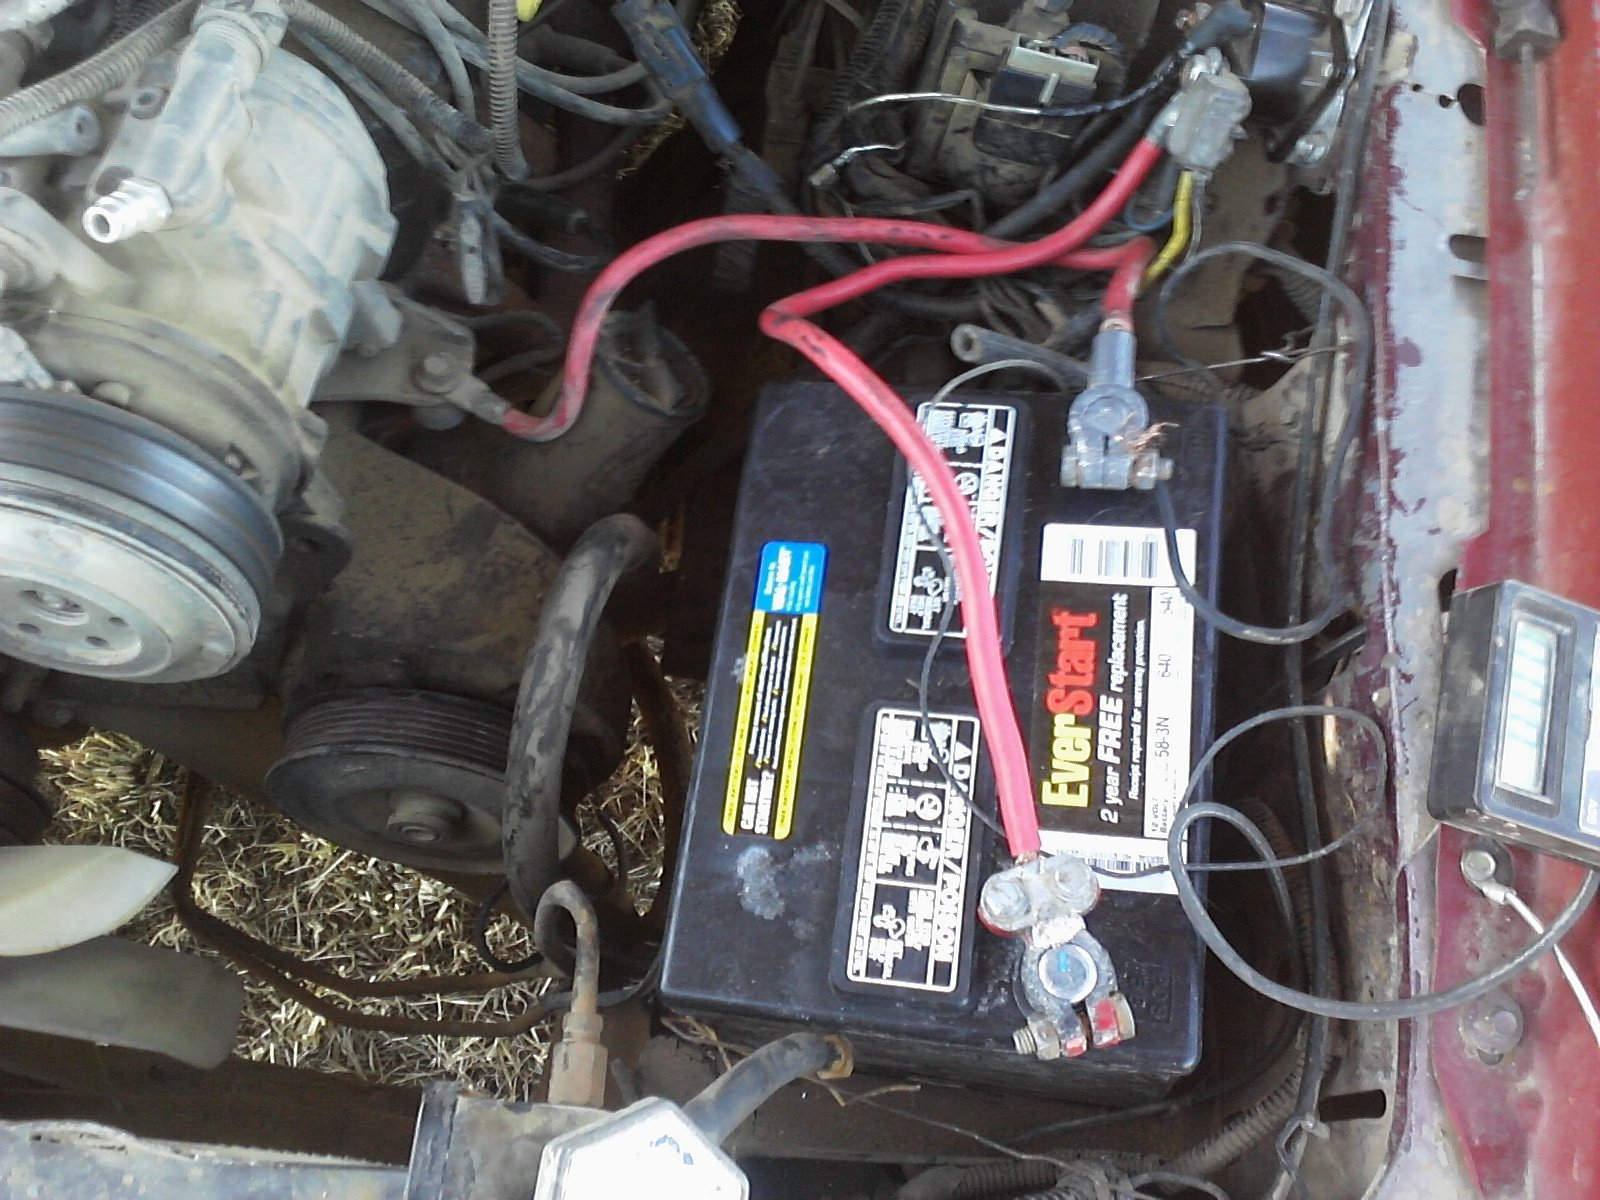 1990 Mustang Gt Starter Solenoid Issues  Please Help Me